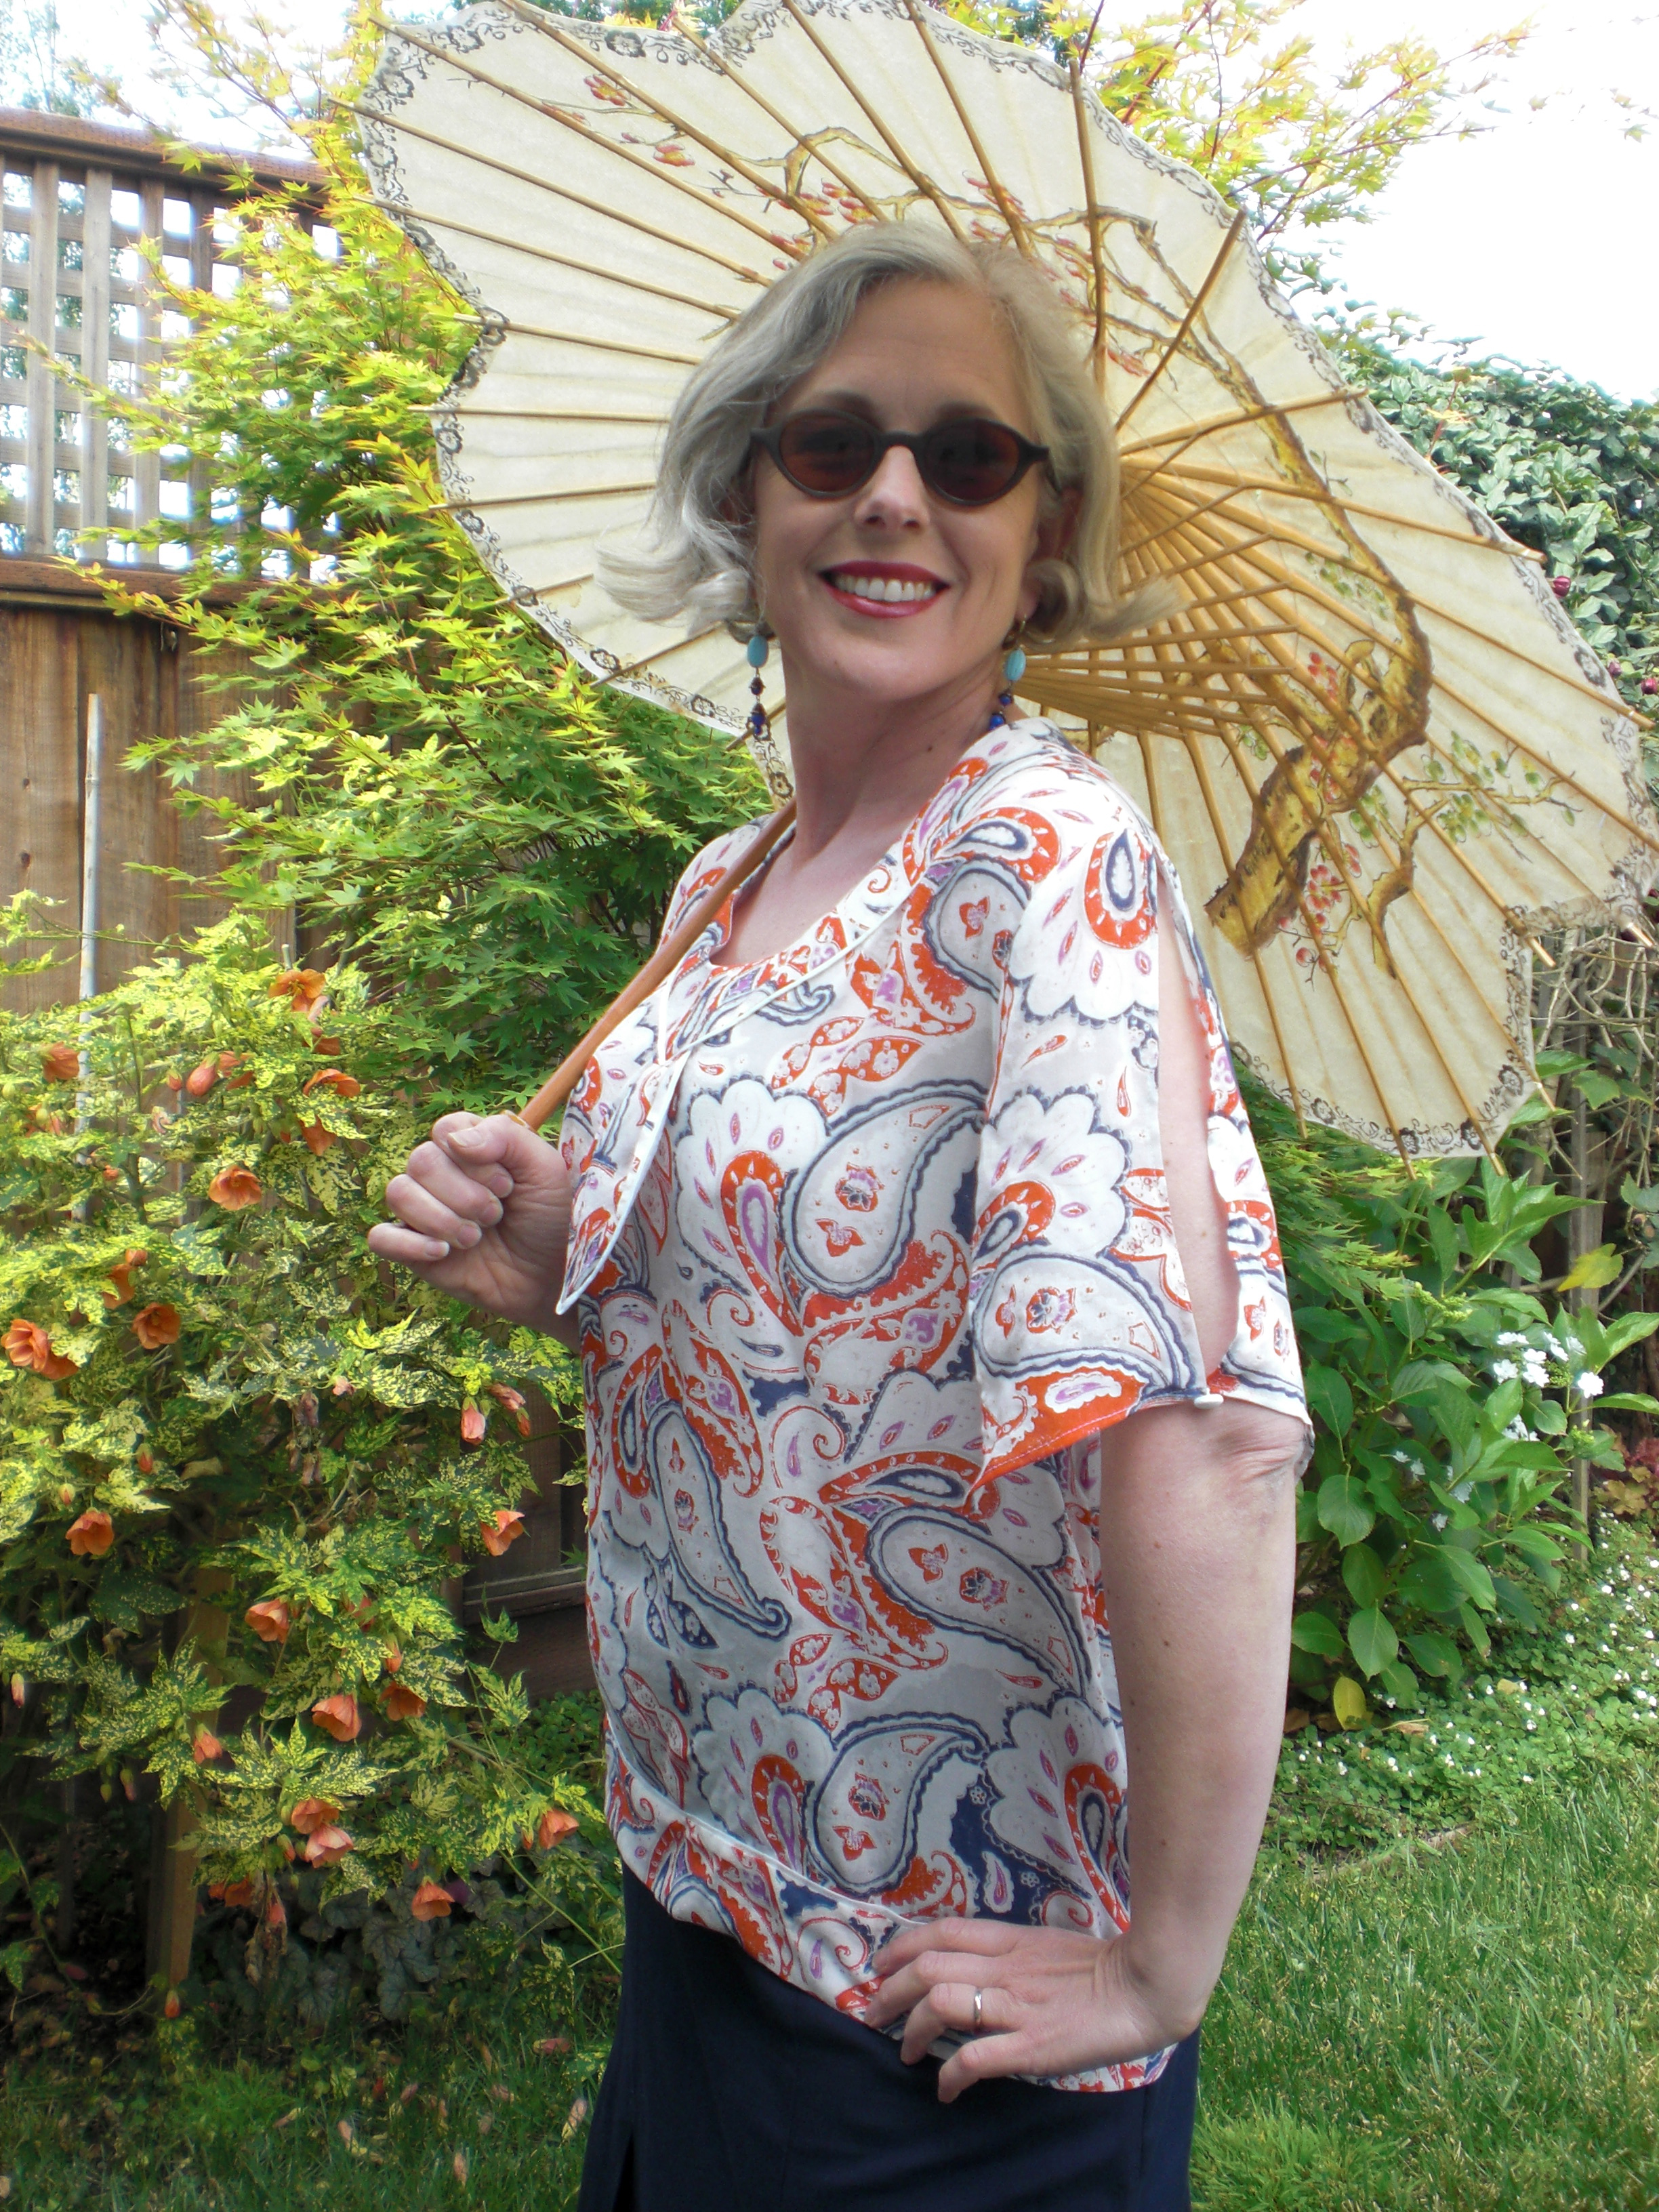 Finished Blouse #3. This is a great blouse for summer and I am super excited to wear it as the weather warms up.